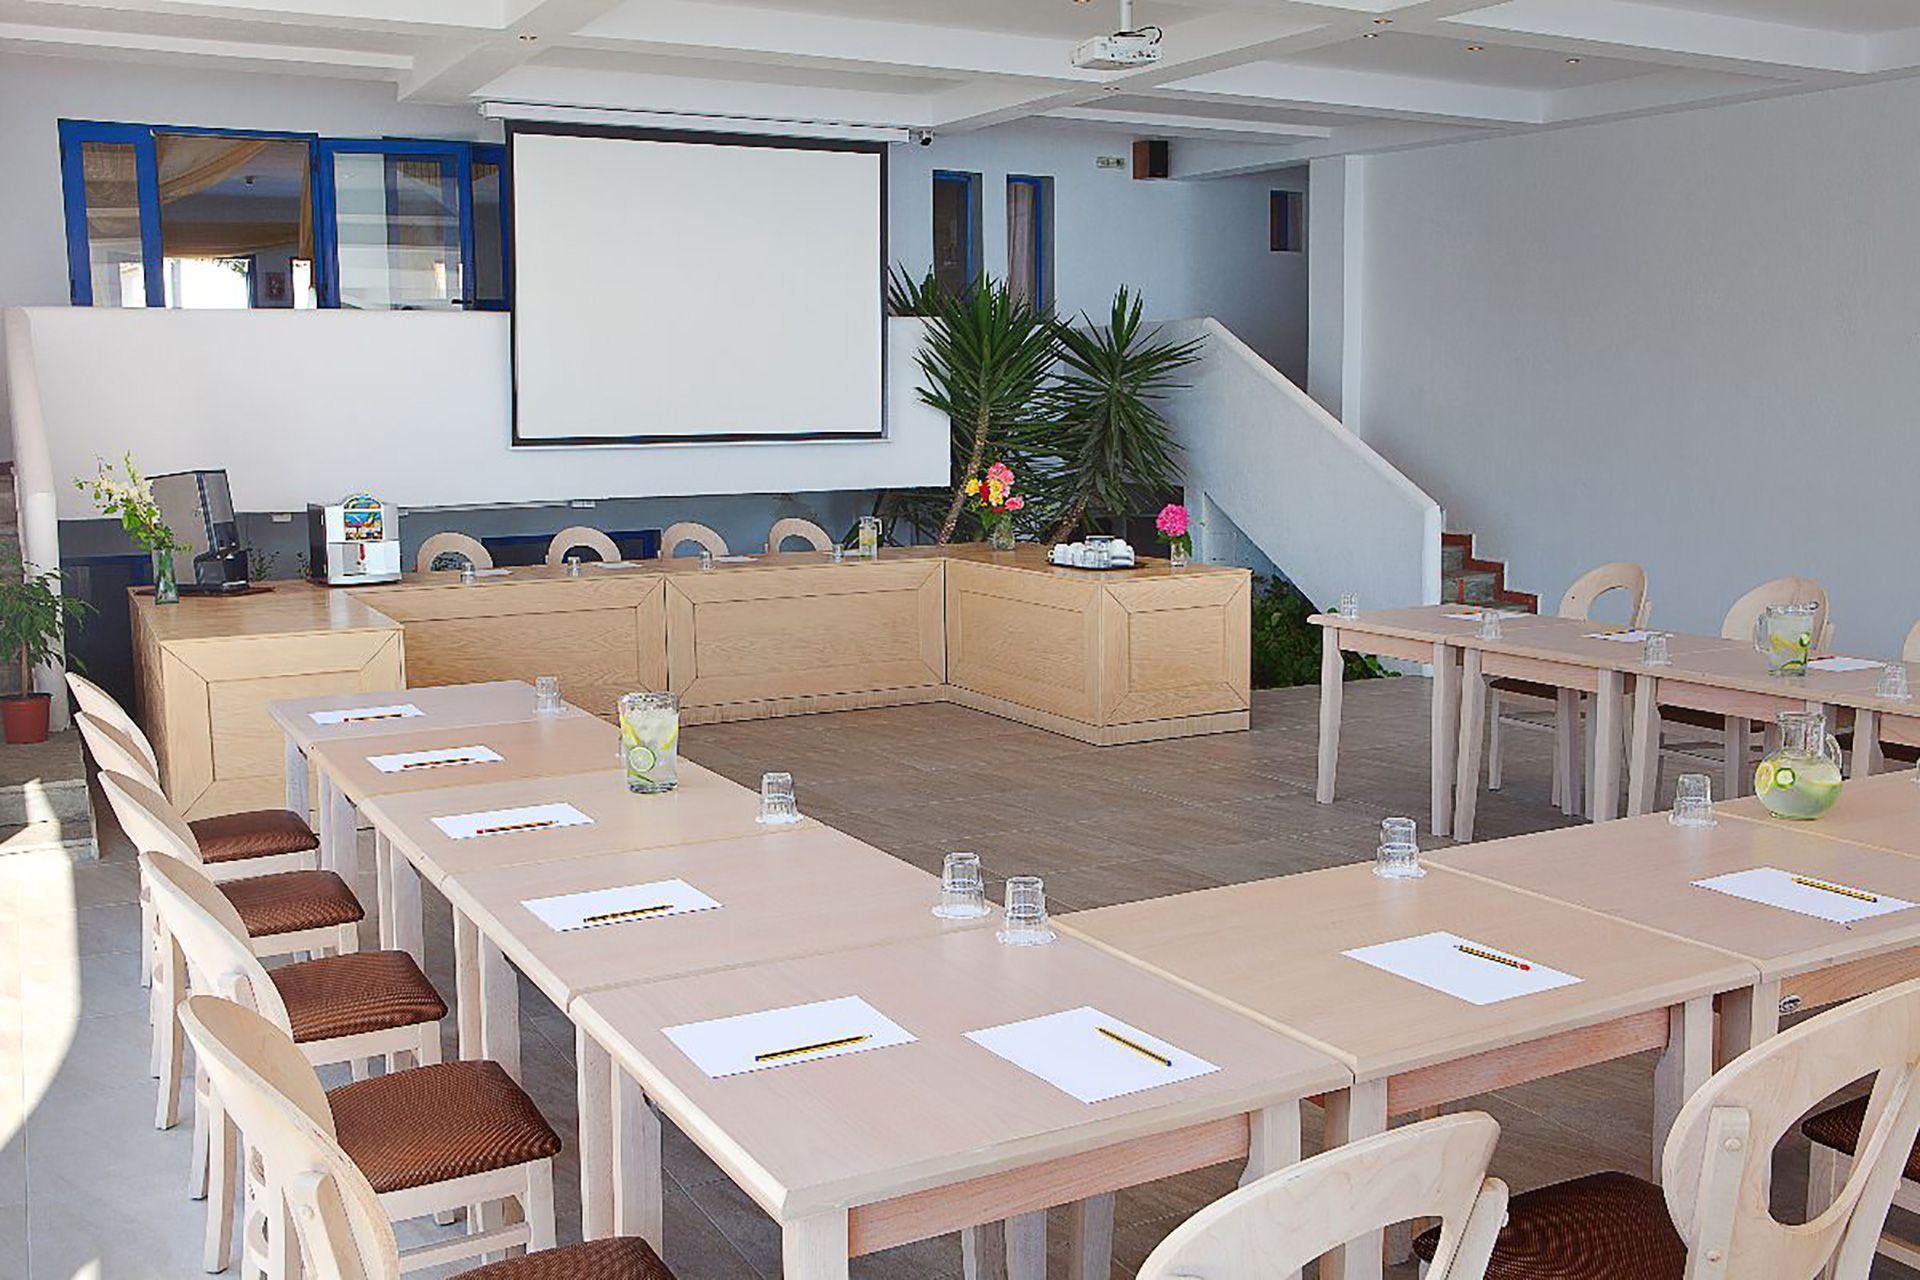 The hotel has a meeting room with appropriate audiovisual equipment for presentations and a 2,7m x 1,80m large screen.